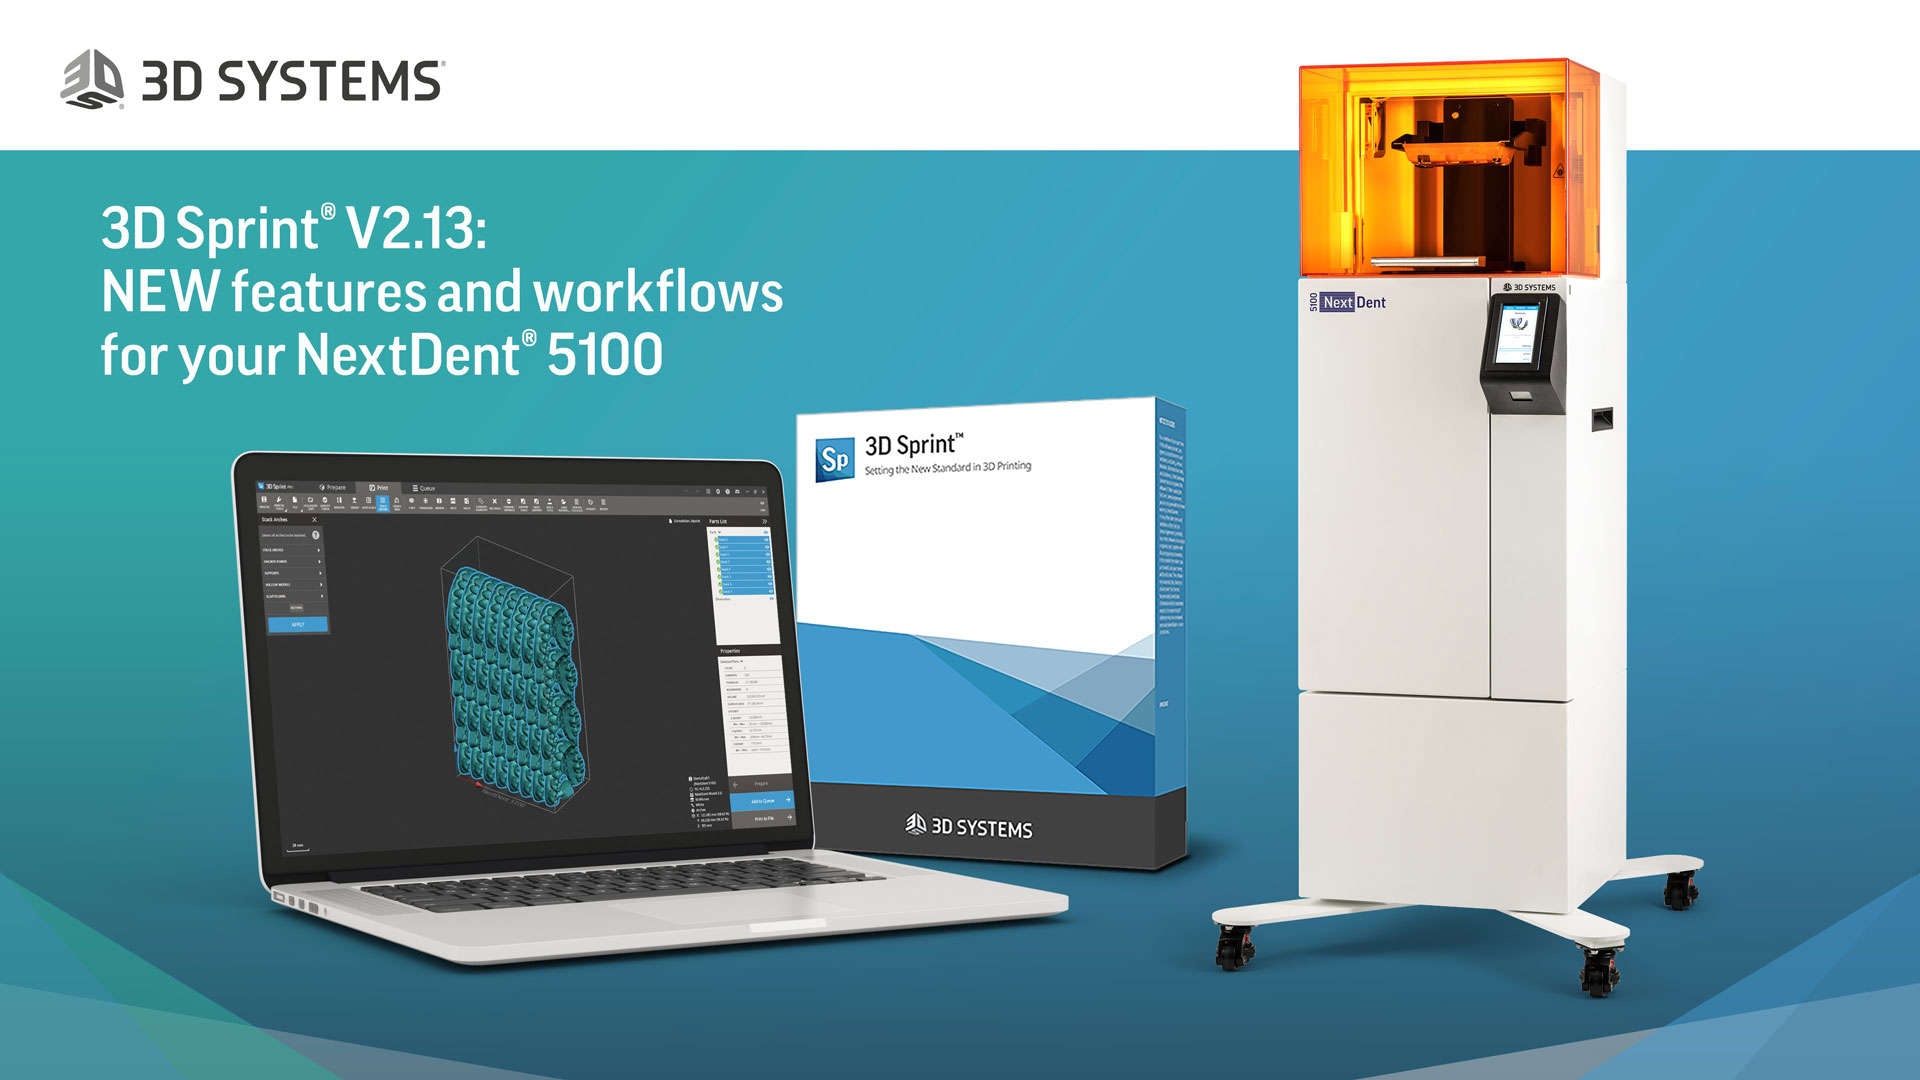 NextDent Webinar 11th May 2020 - 3D Sprint V2.13 New features and workflows for your NextDent 5100